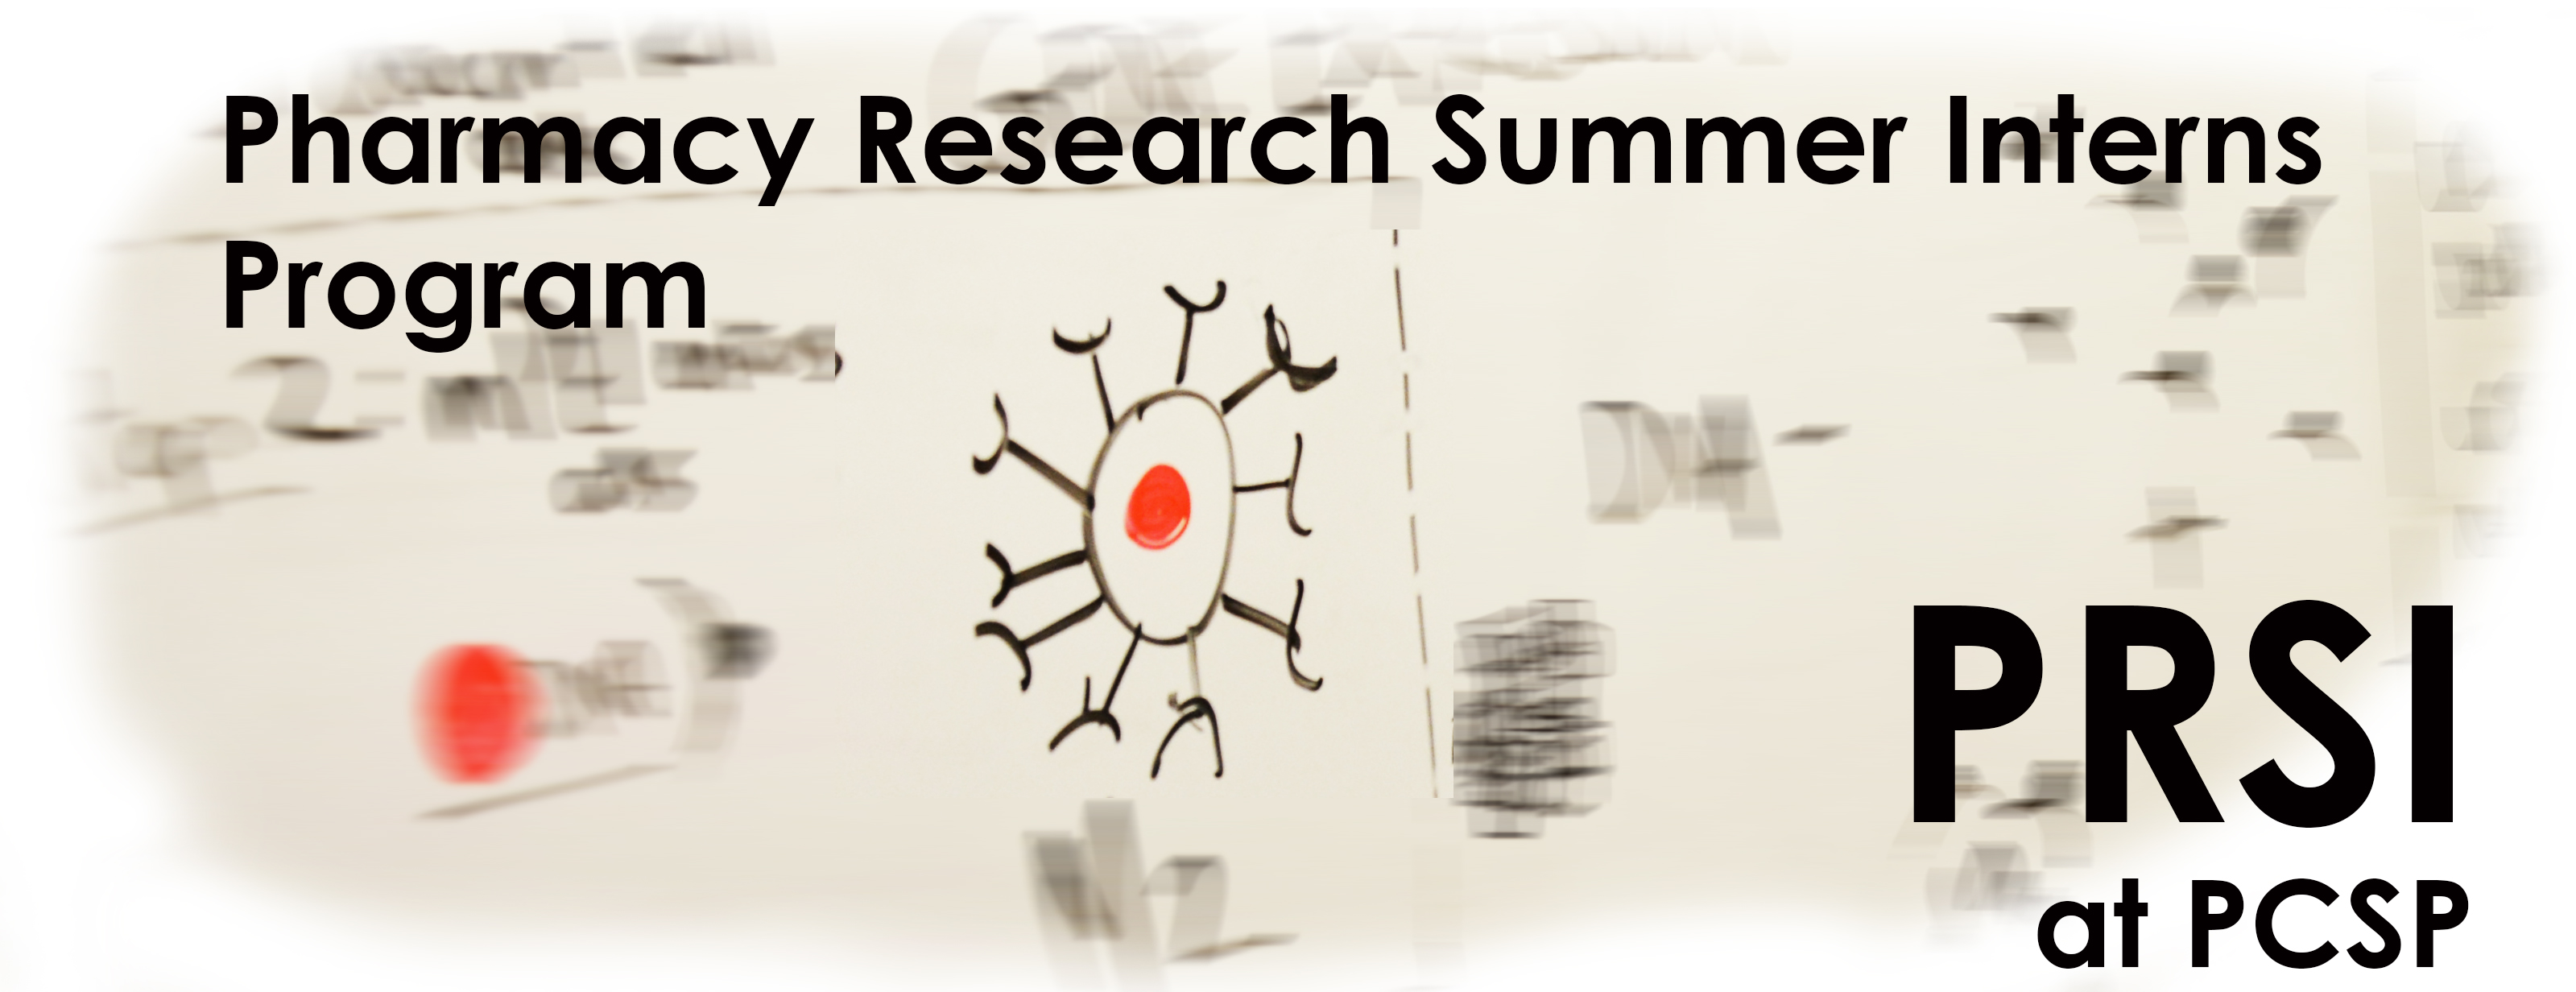 Pharmacy Research Summer Interns Program